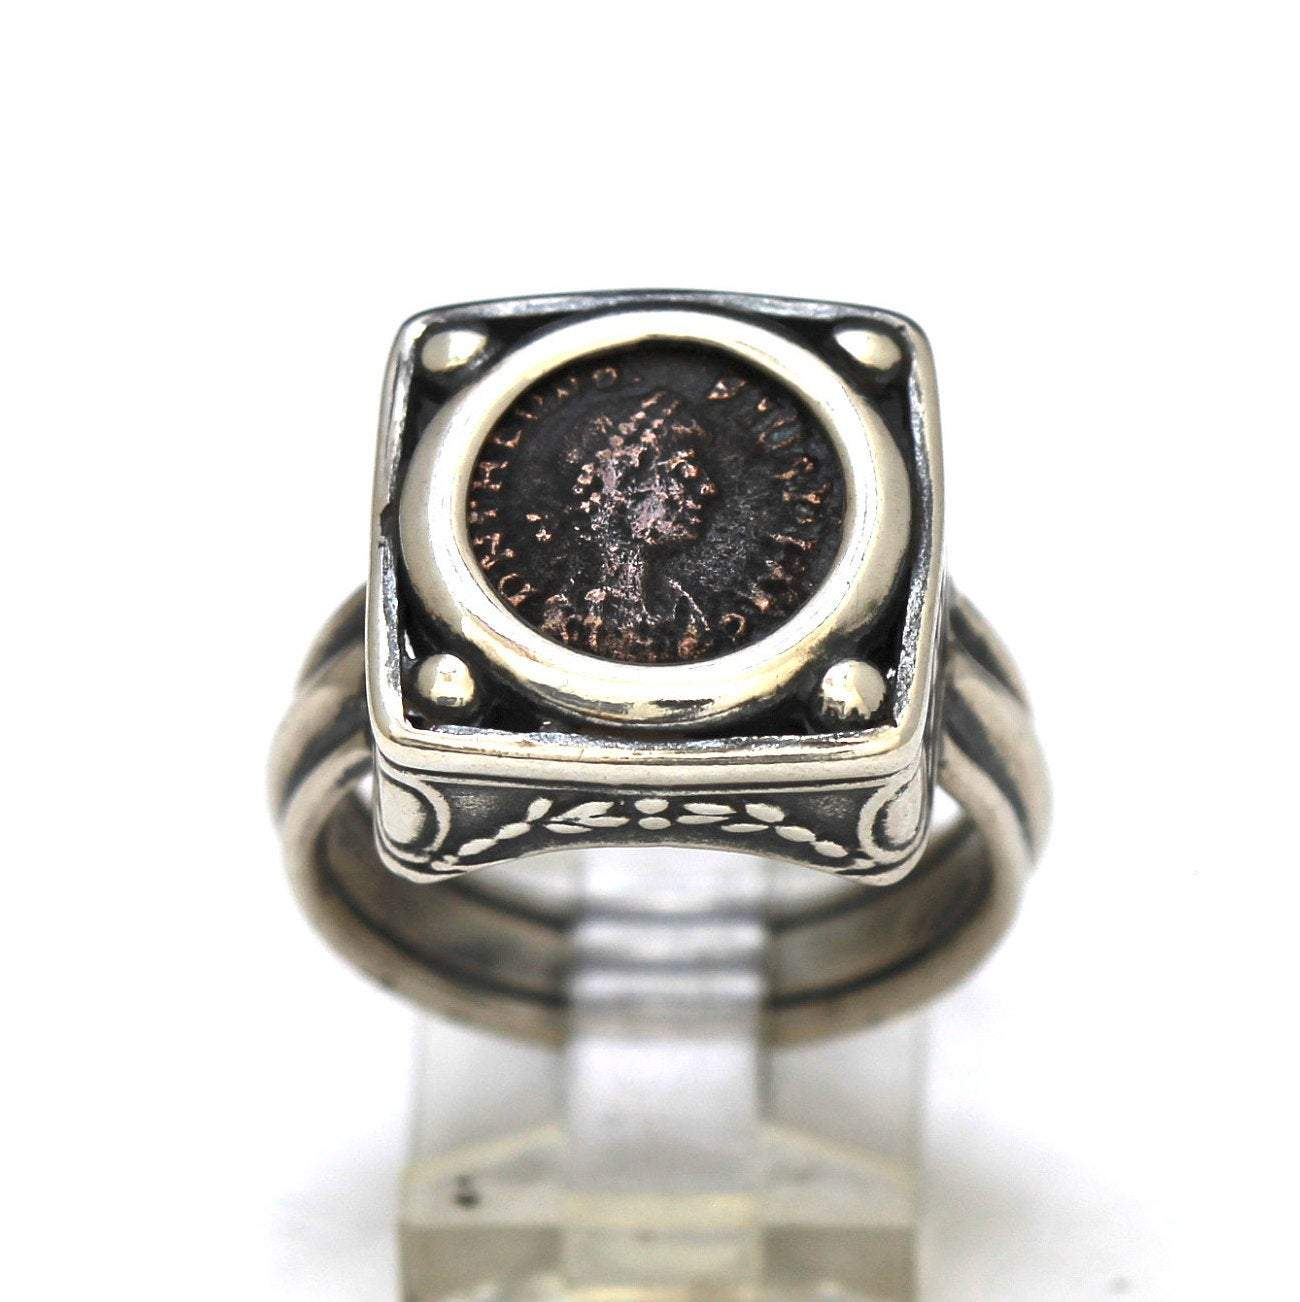 Roman Bronze Coin, Sterling Silver Ring, Genuine Ancient Coin, with Certificate 8060 - Erez Ancient Coin Jewelry, ancient coin jewelry, men jewelry, genuine ancient coins, made in the US